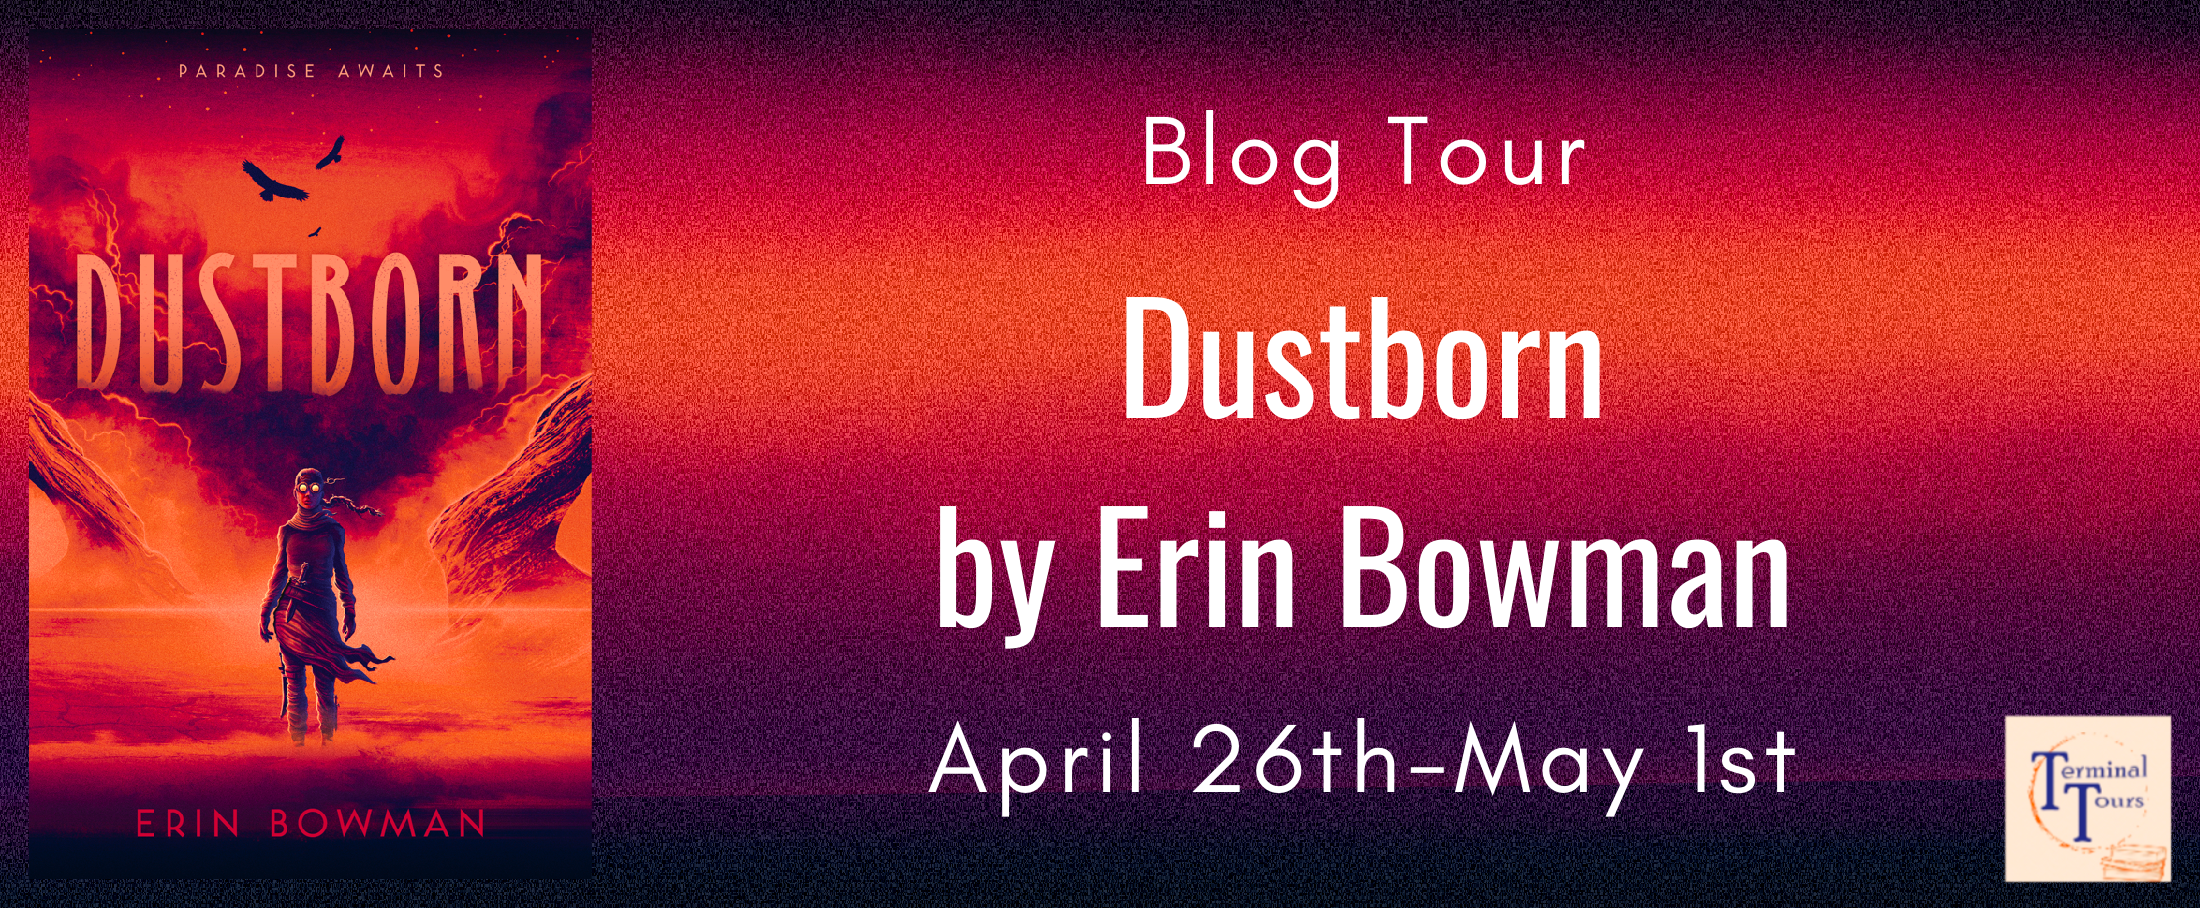 Blog Tour / / Dustborn by Erin Bowman / /